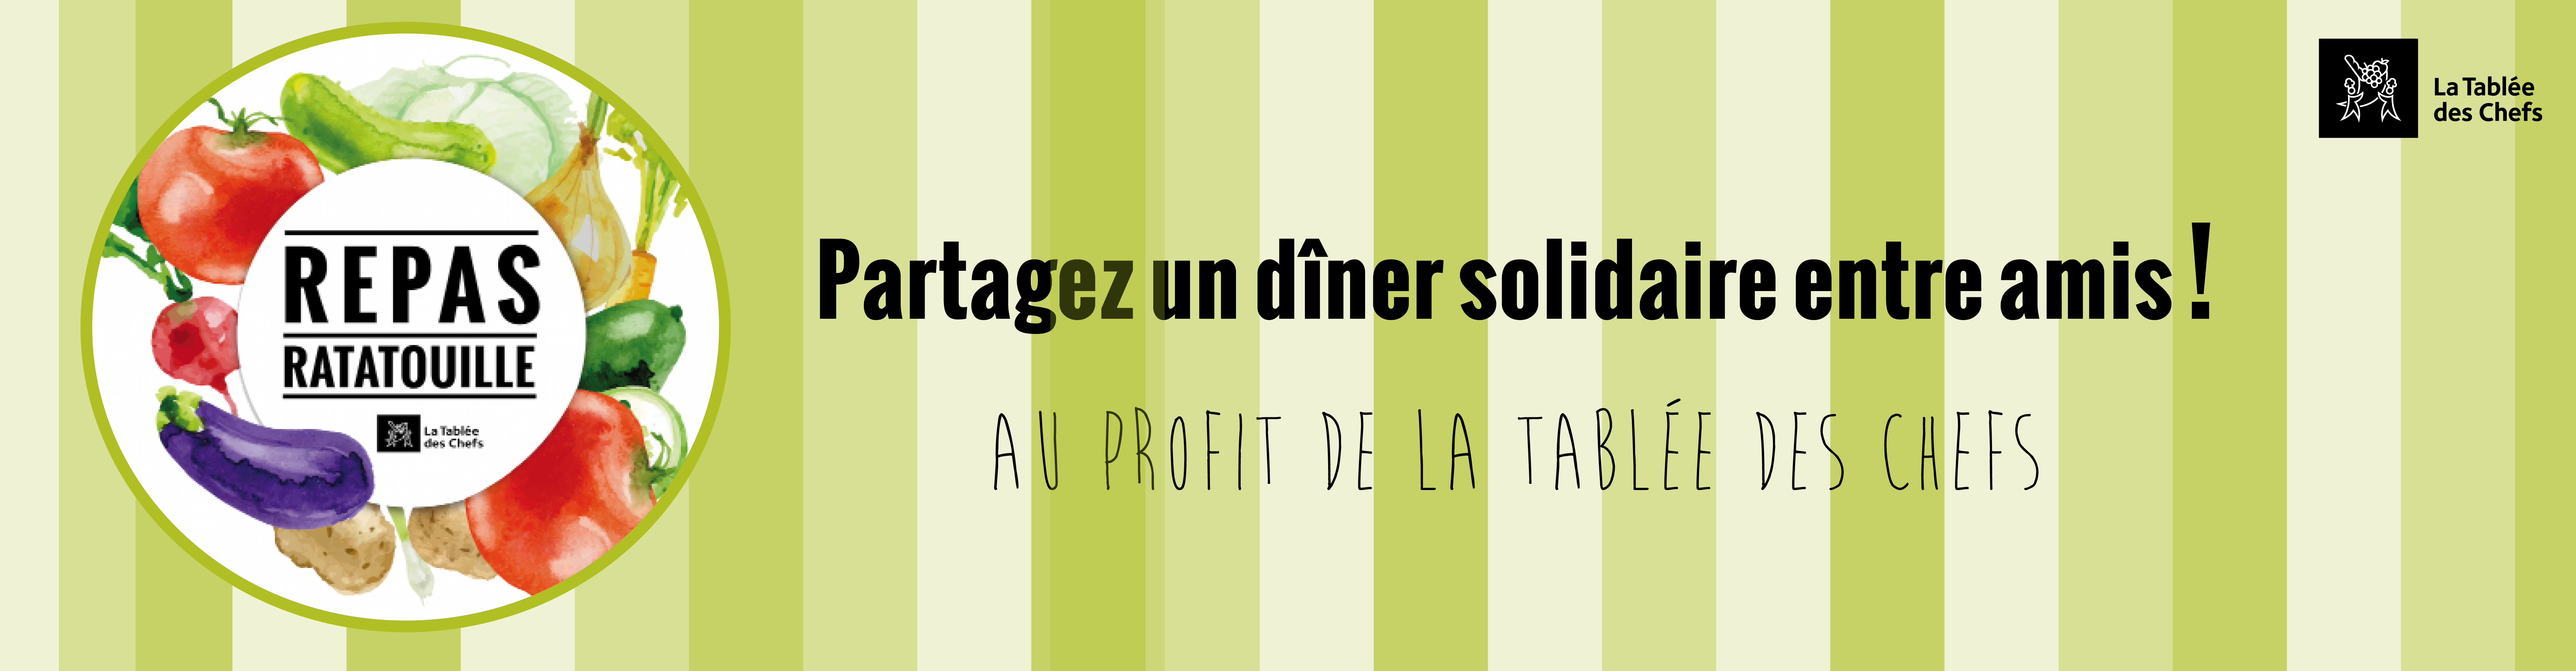 chefs solidaires 2017